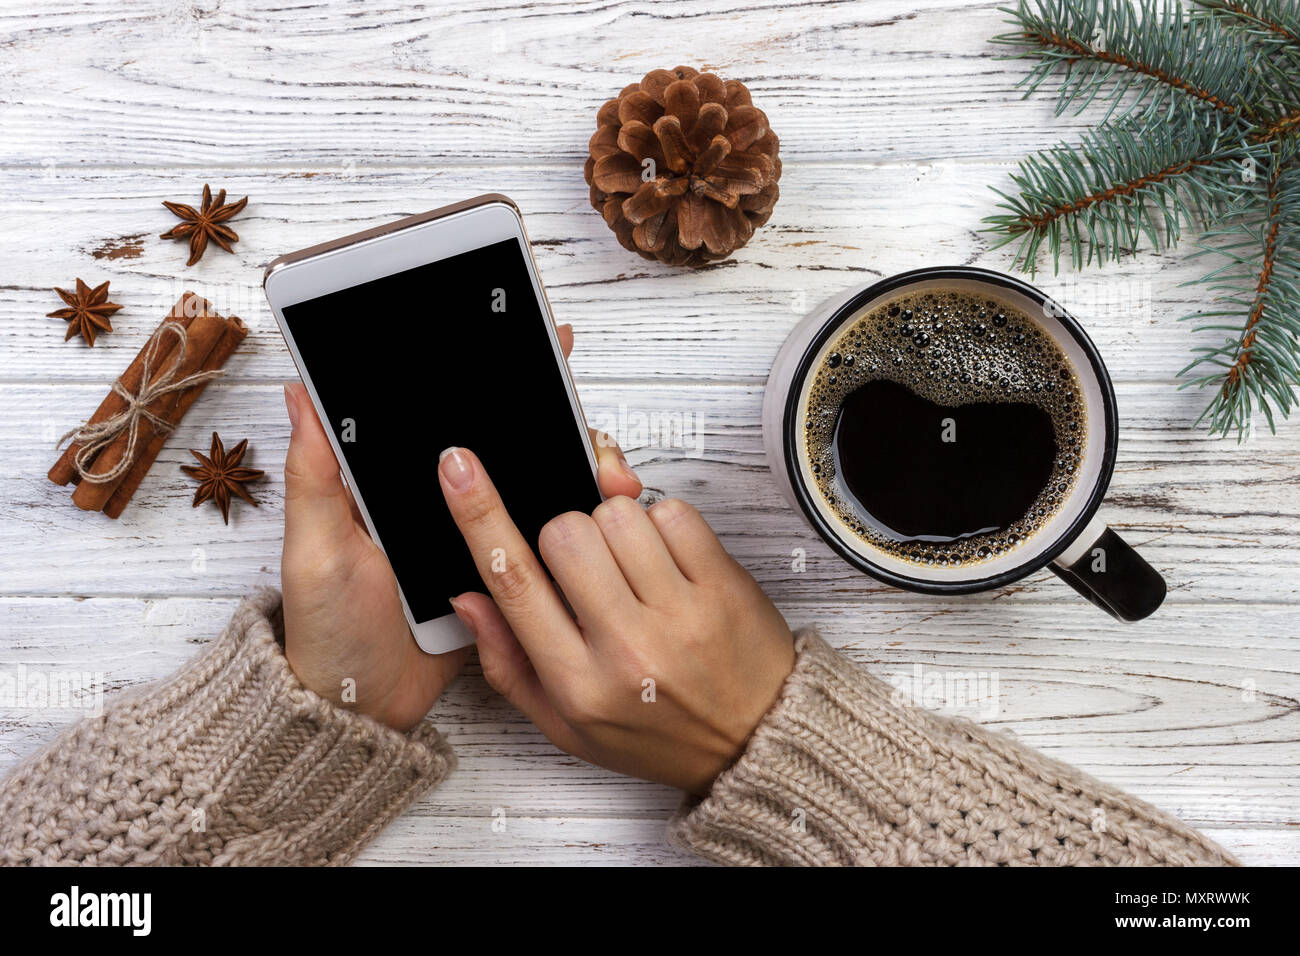 Girl in a cozy knitted sweater uses the phone while sitting at a table with Christmas accessories. - Stock Image